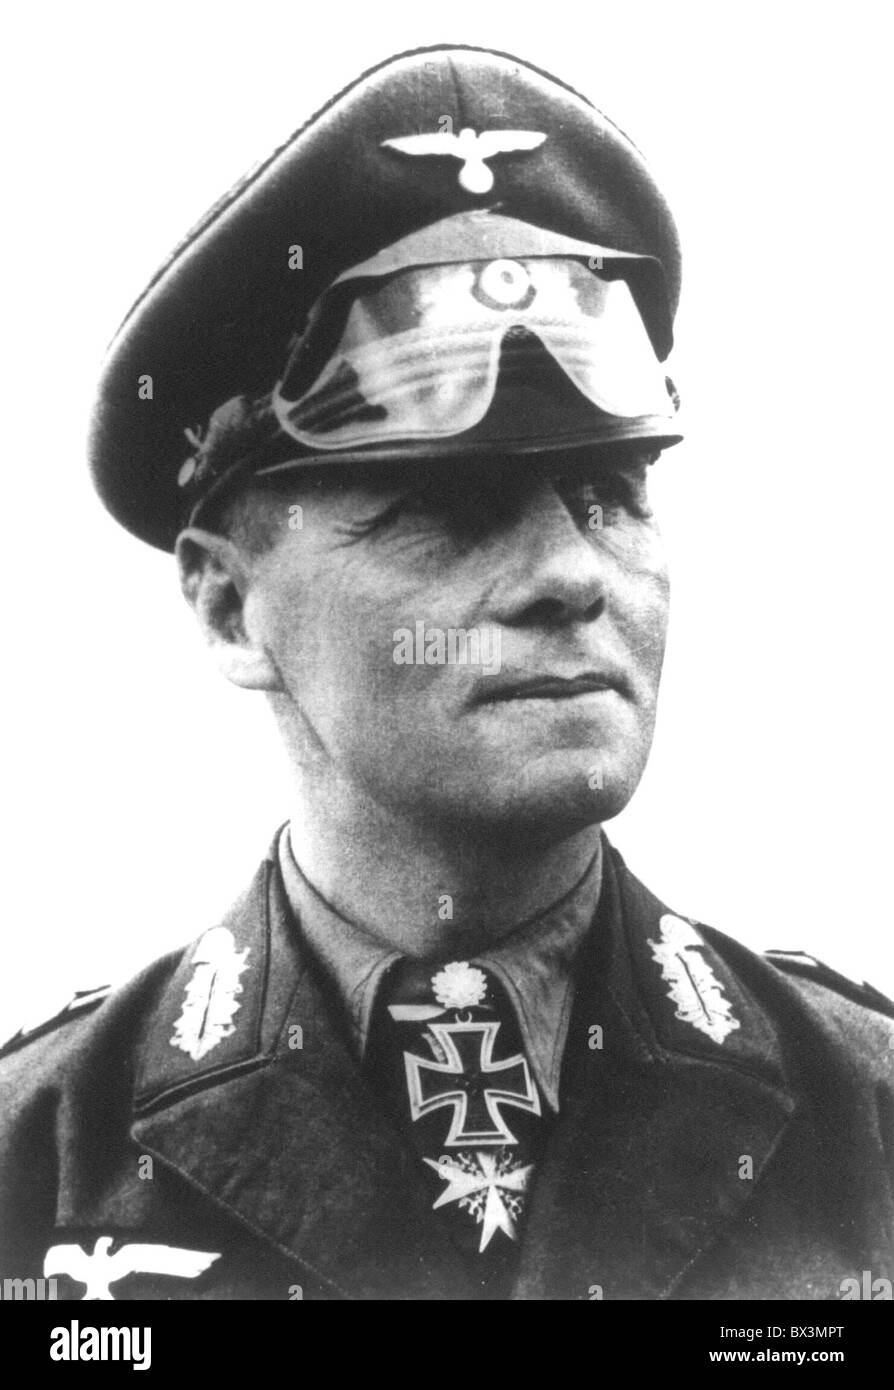 Field Marshall Erwin Rommel was one of Germany's most respected military leaders in World War Two. - Stock Image